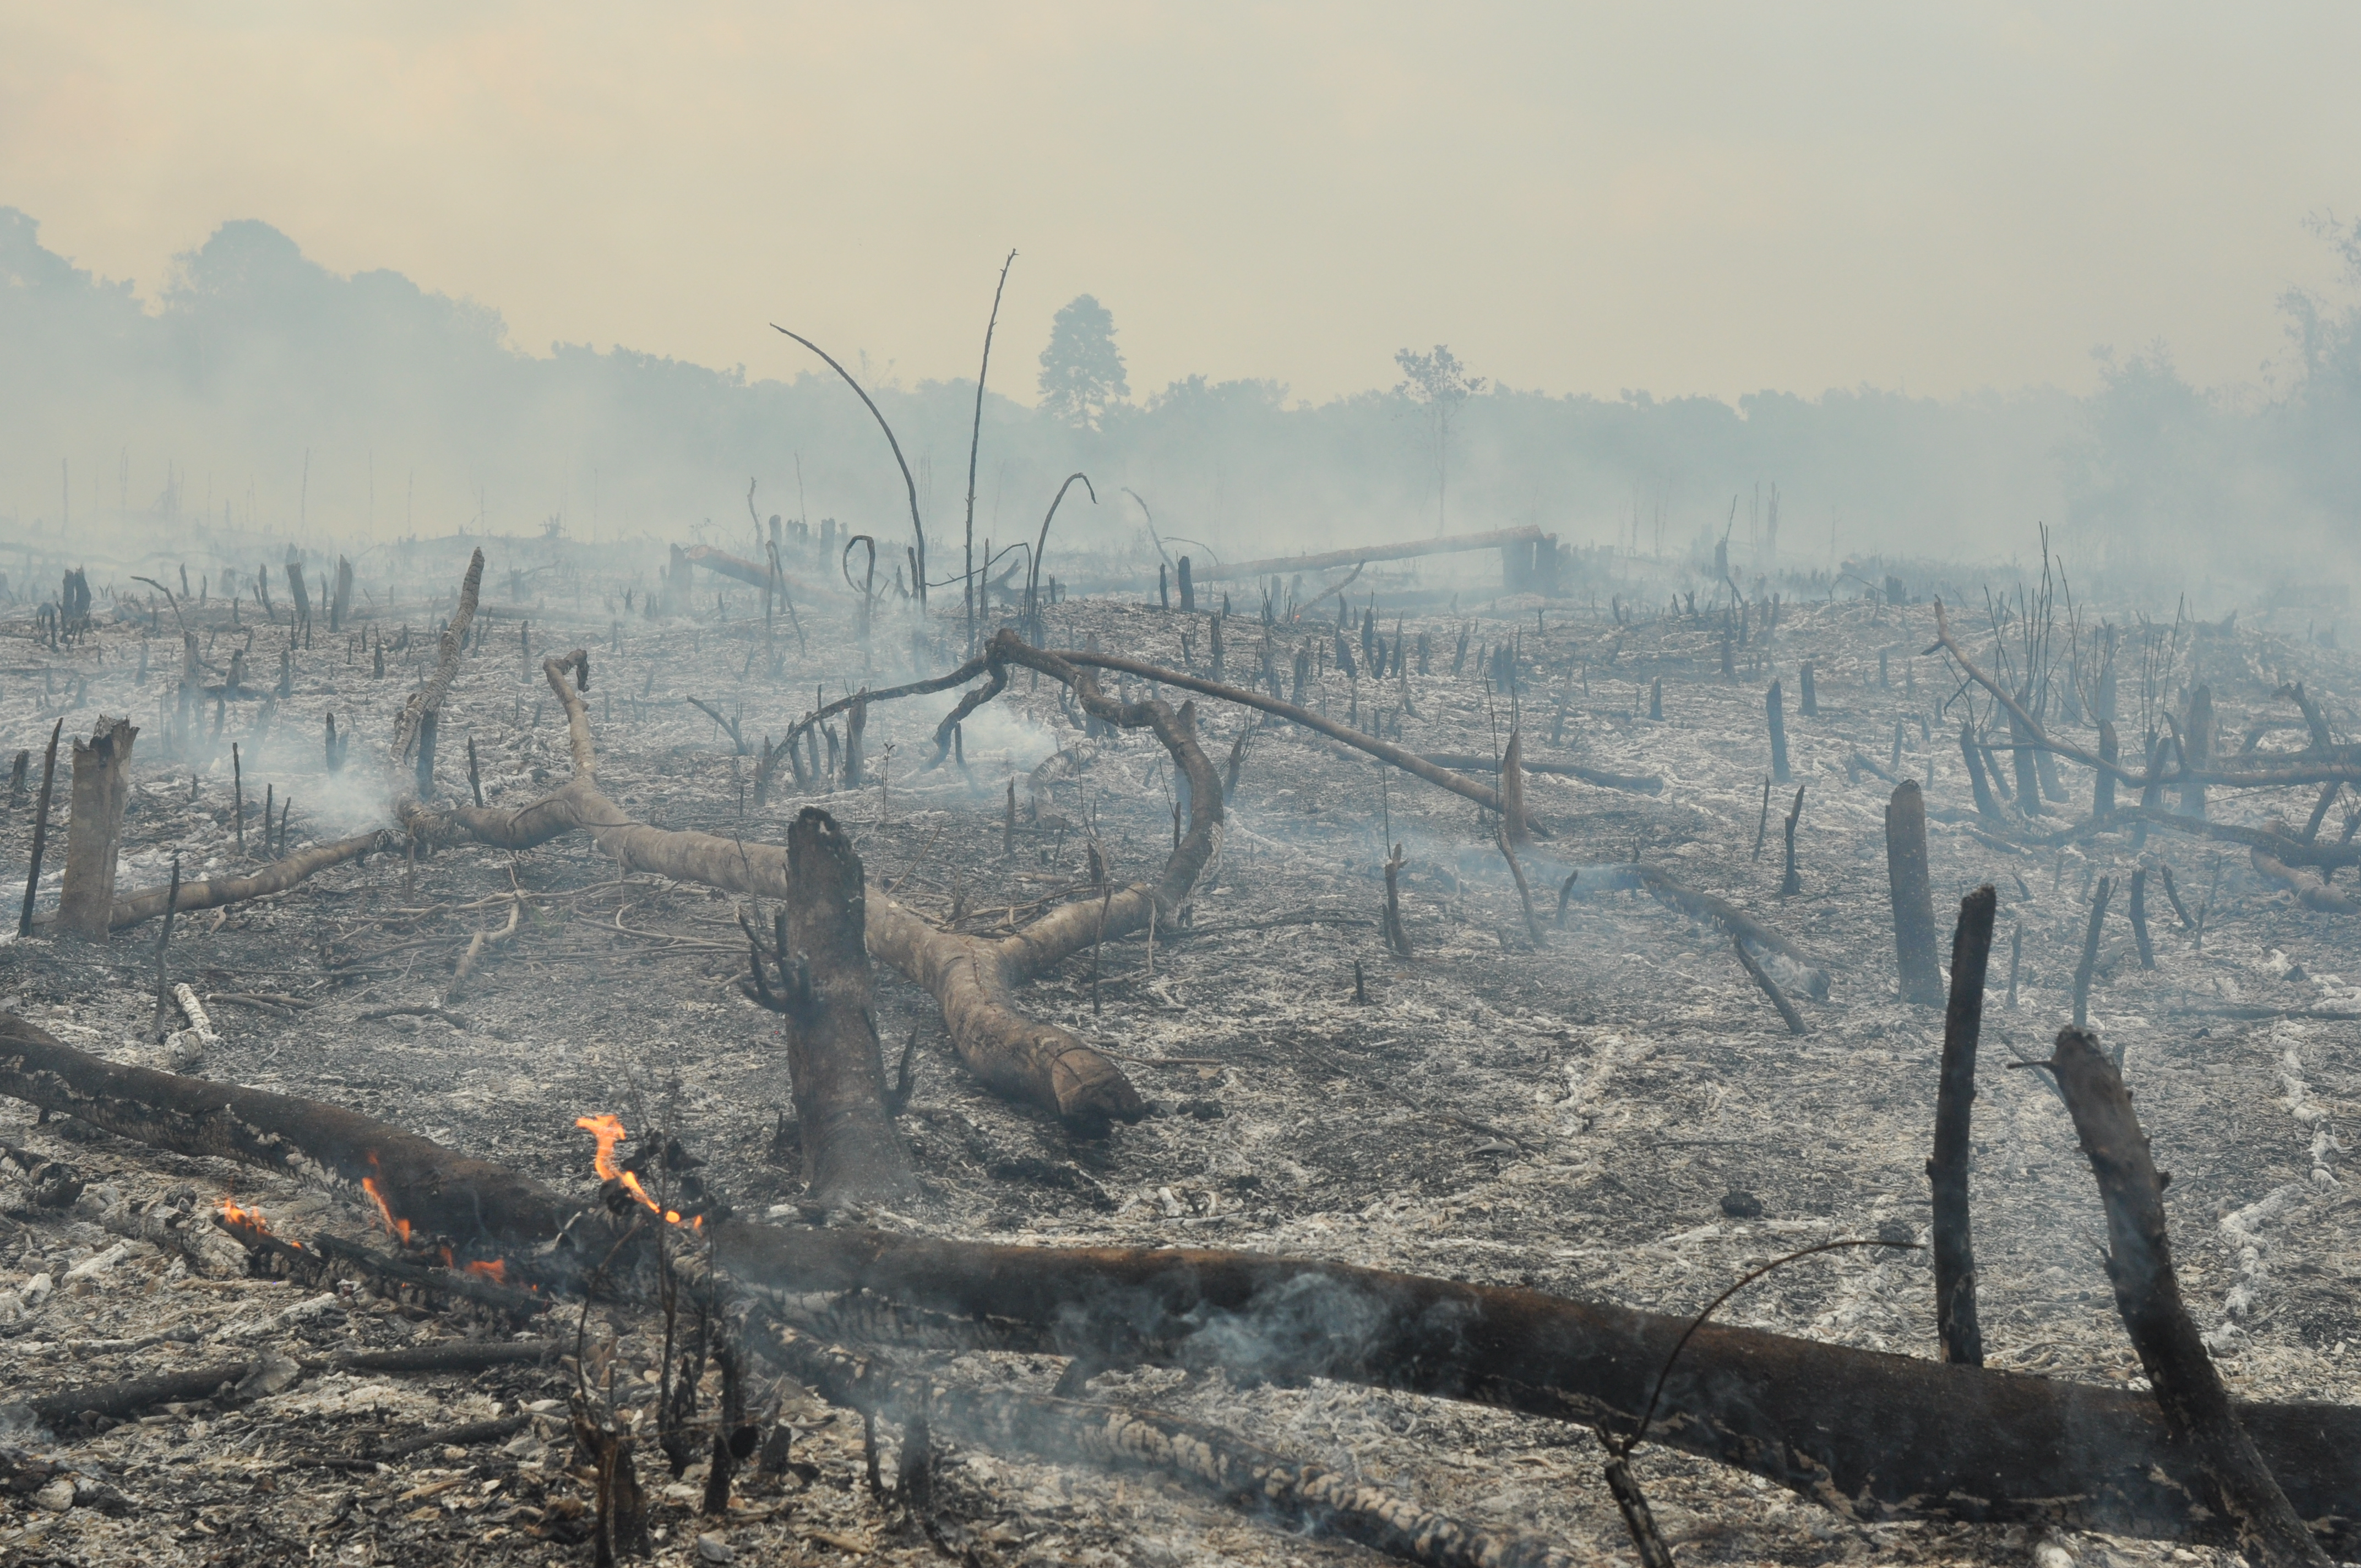 smoke rises from an area littered with charred logs into a hazy sky